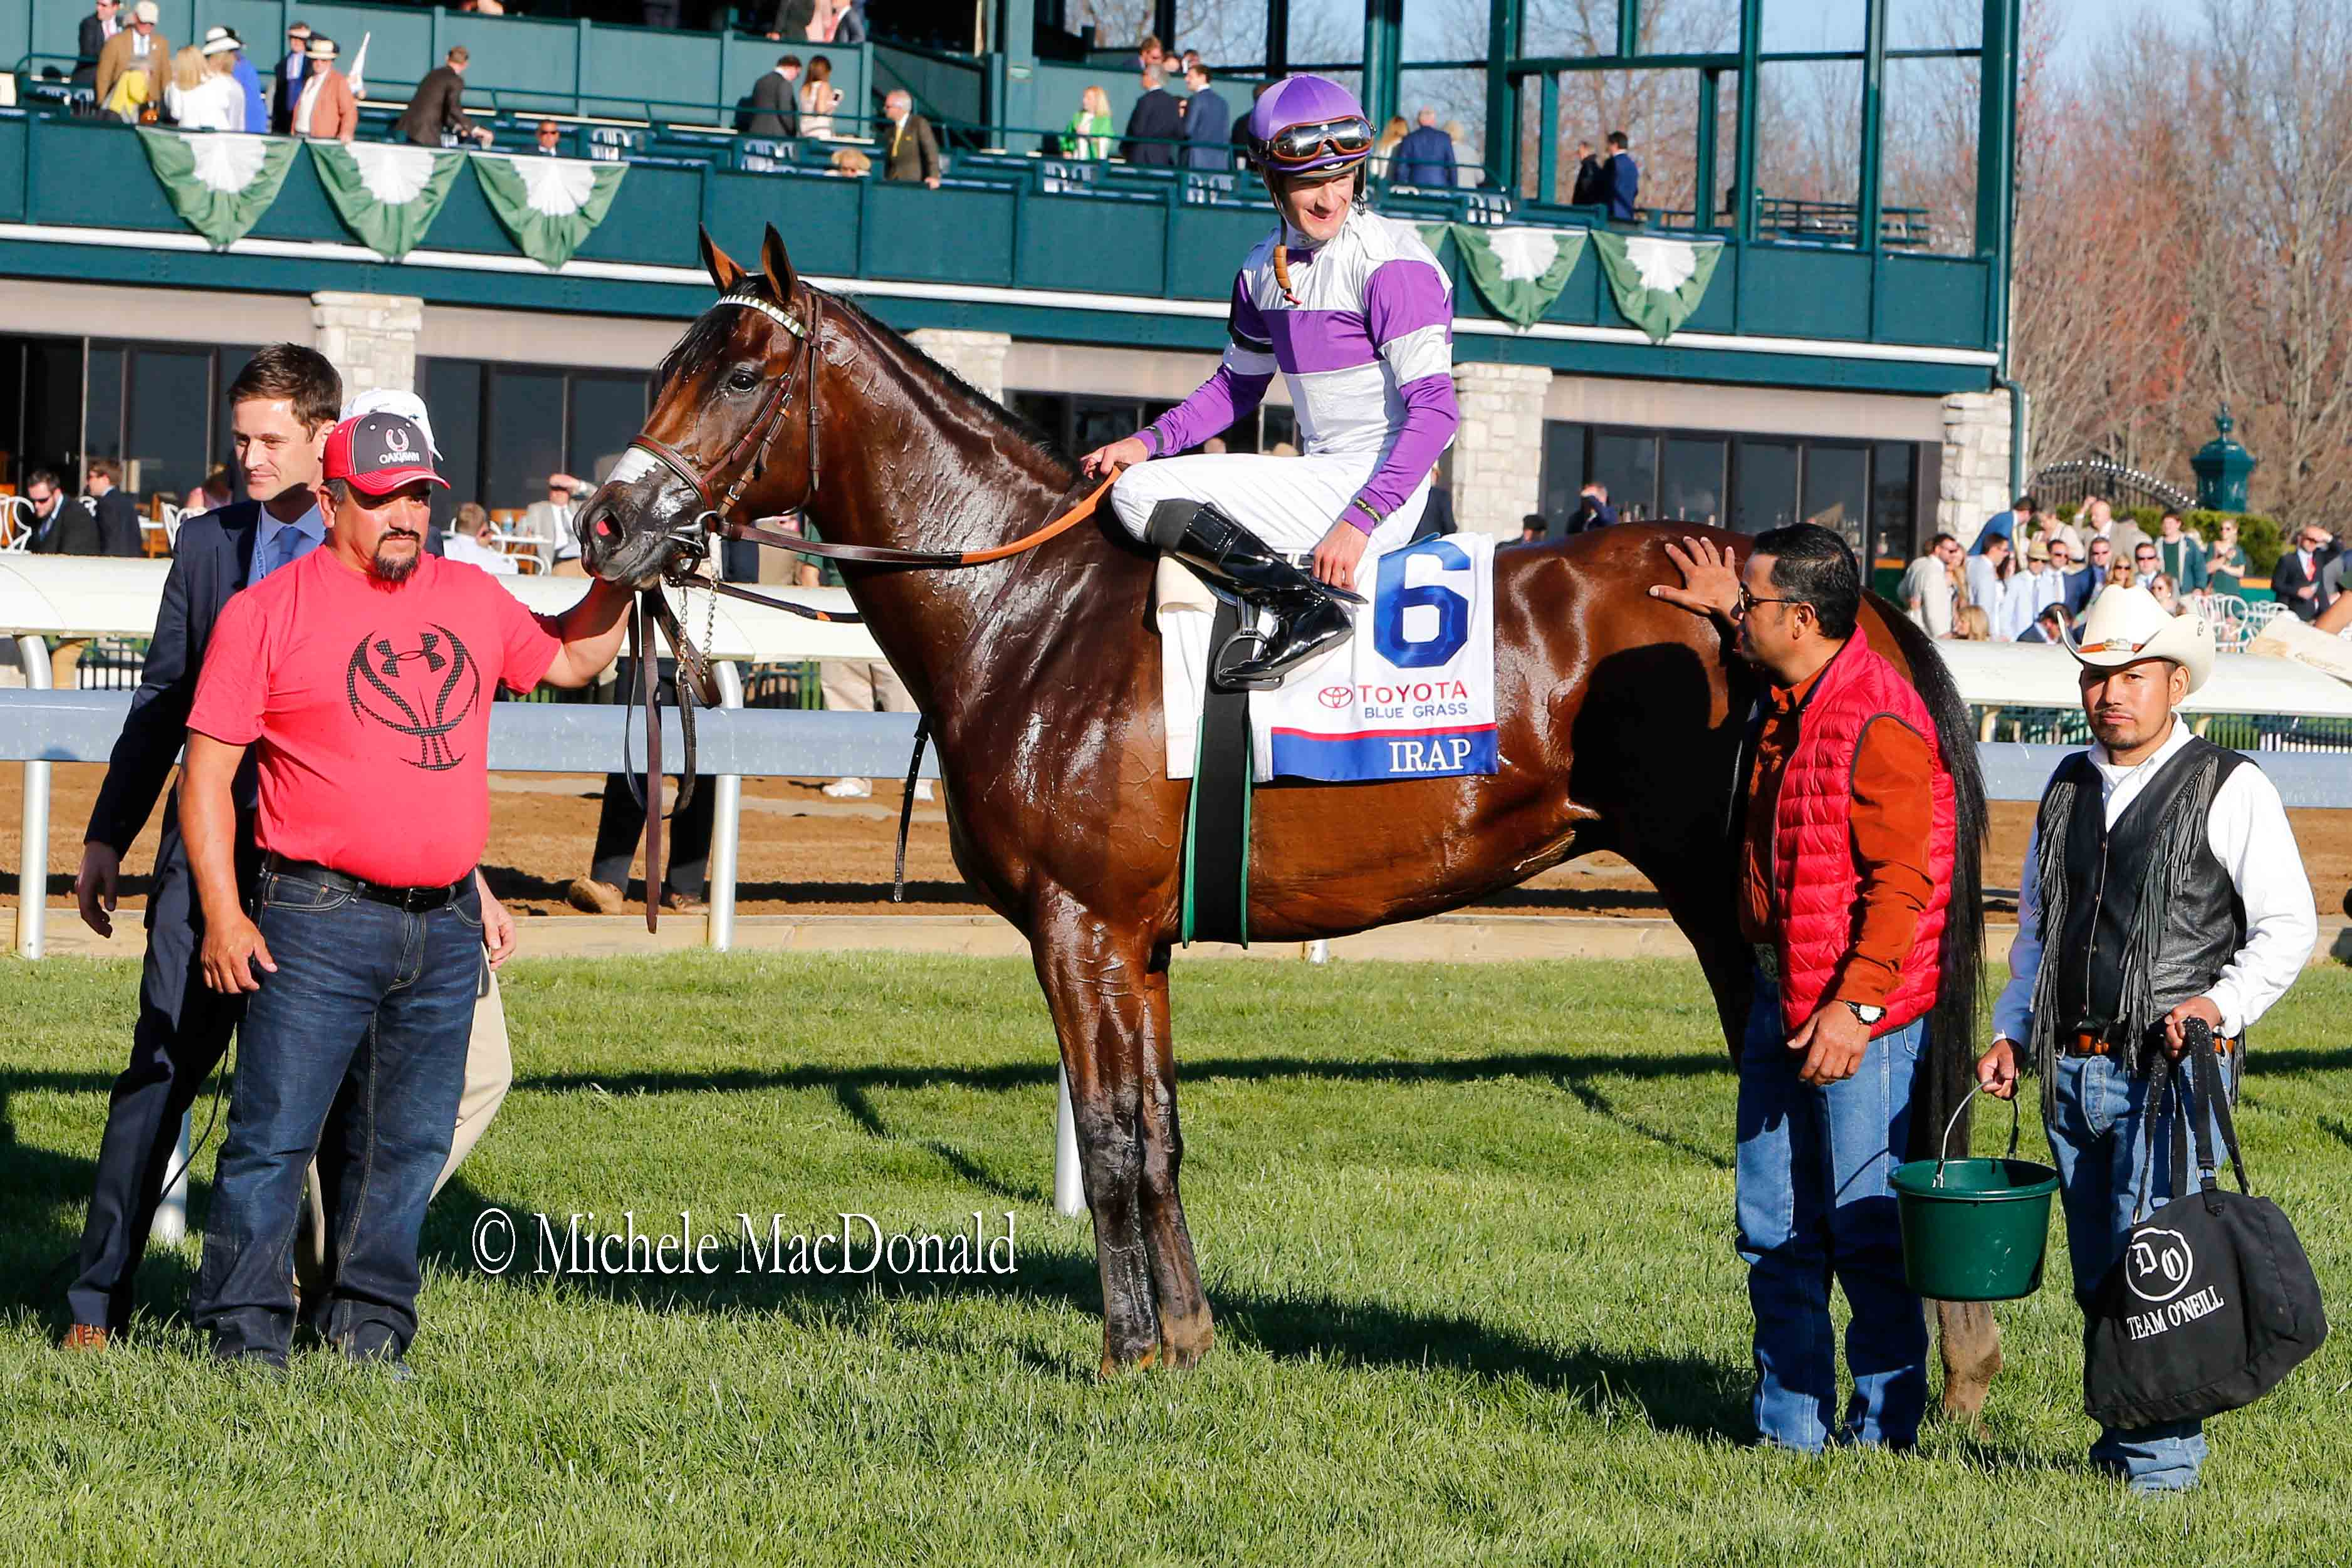 Strong specimen: Irap with members of Team O'Neill after his Blue Grass victory at Keeneland. Photo: Michele MacDonald